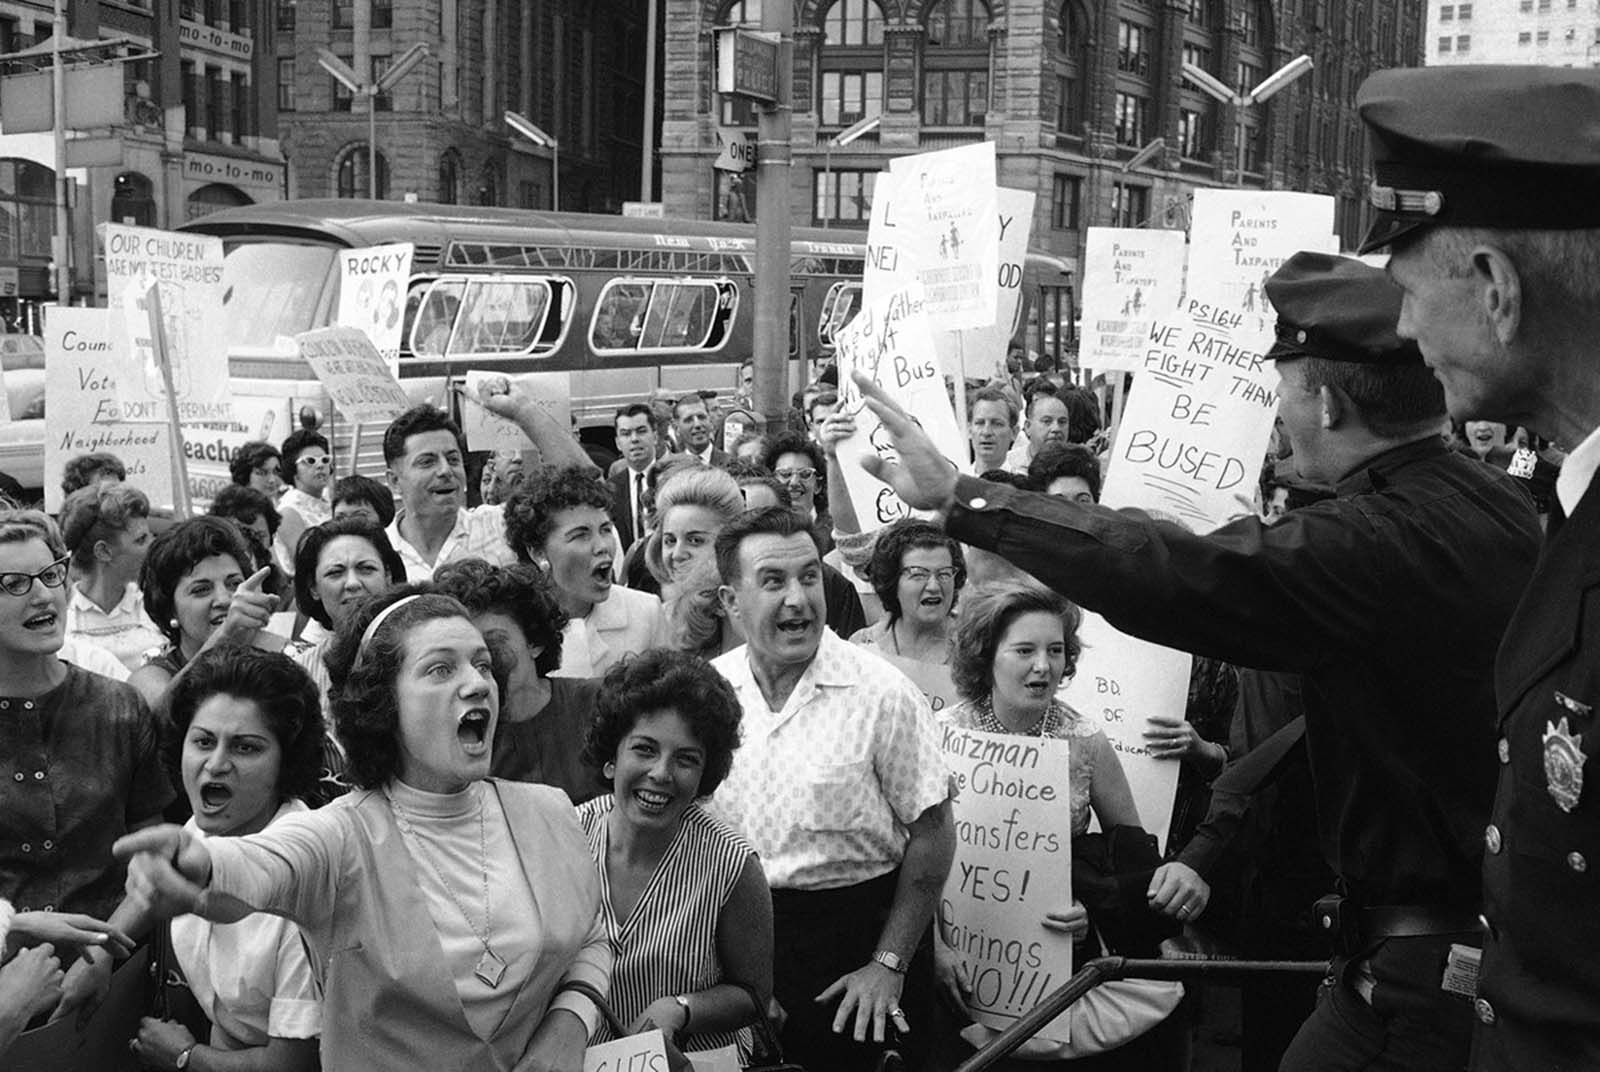 Demonstrators shout at policemen who ask them to move on along City Hall in New York, Sept. 24, 1964 as they protest a Board of Education busing program aimed at increasing racial balance in New York City schools.